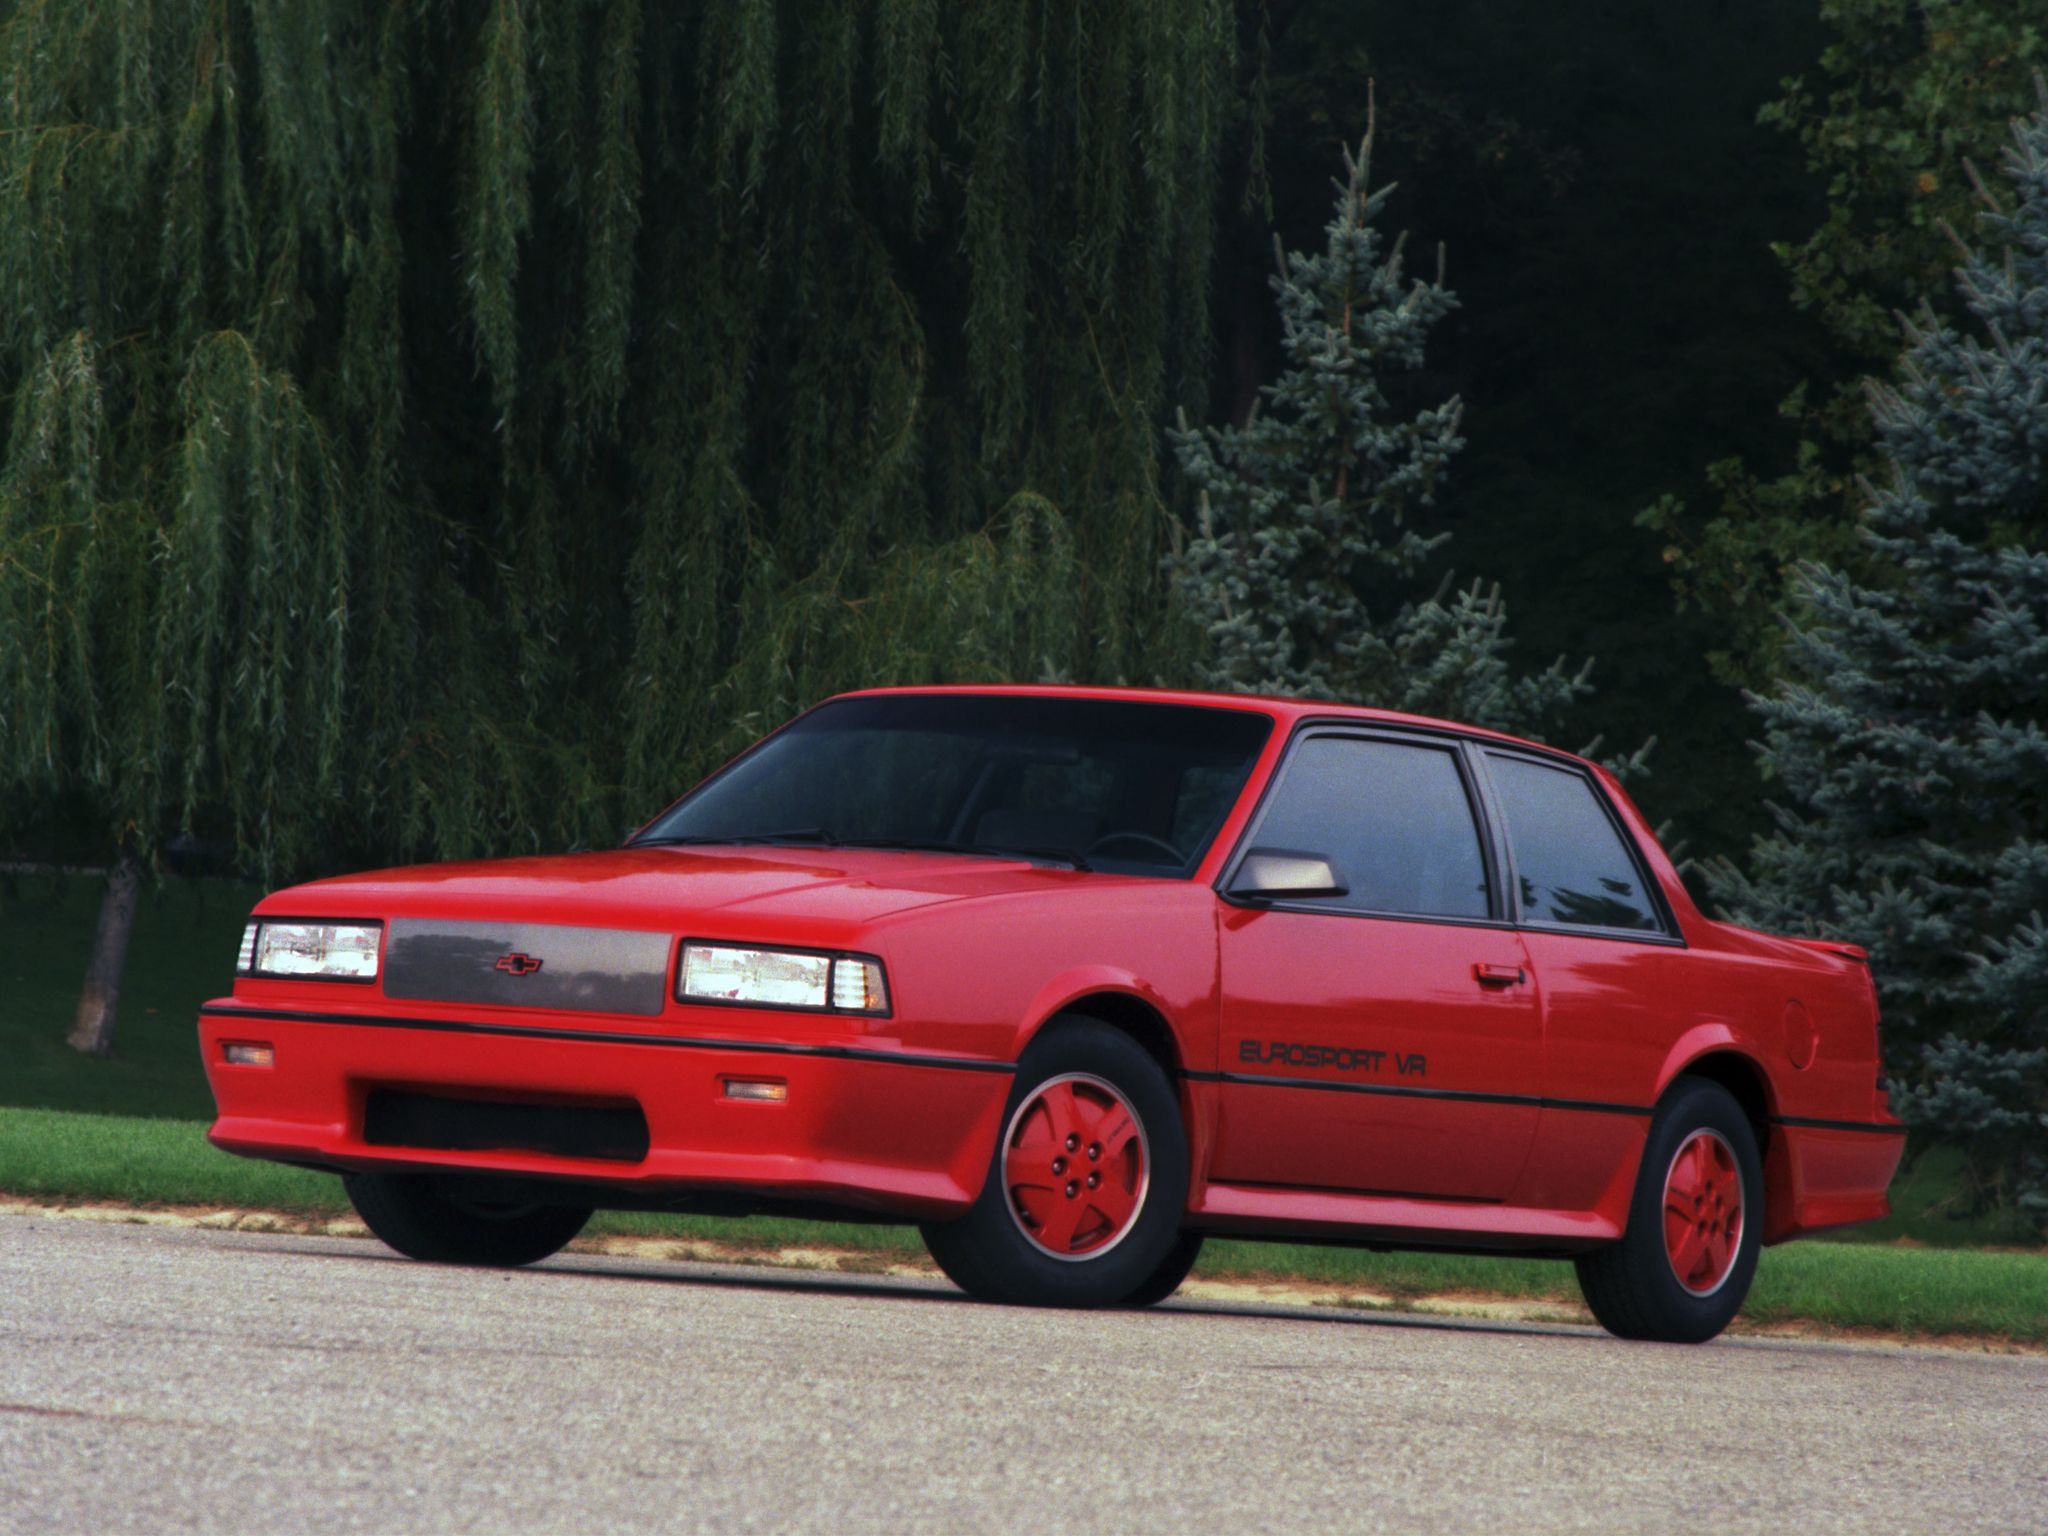 1990 Chevrolet Celebrity Eurosport Wagon | Chevrolet, Cars and Weird cars